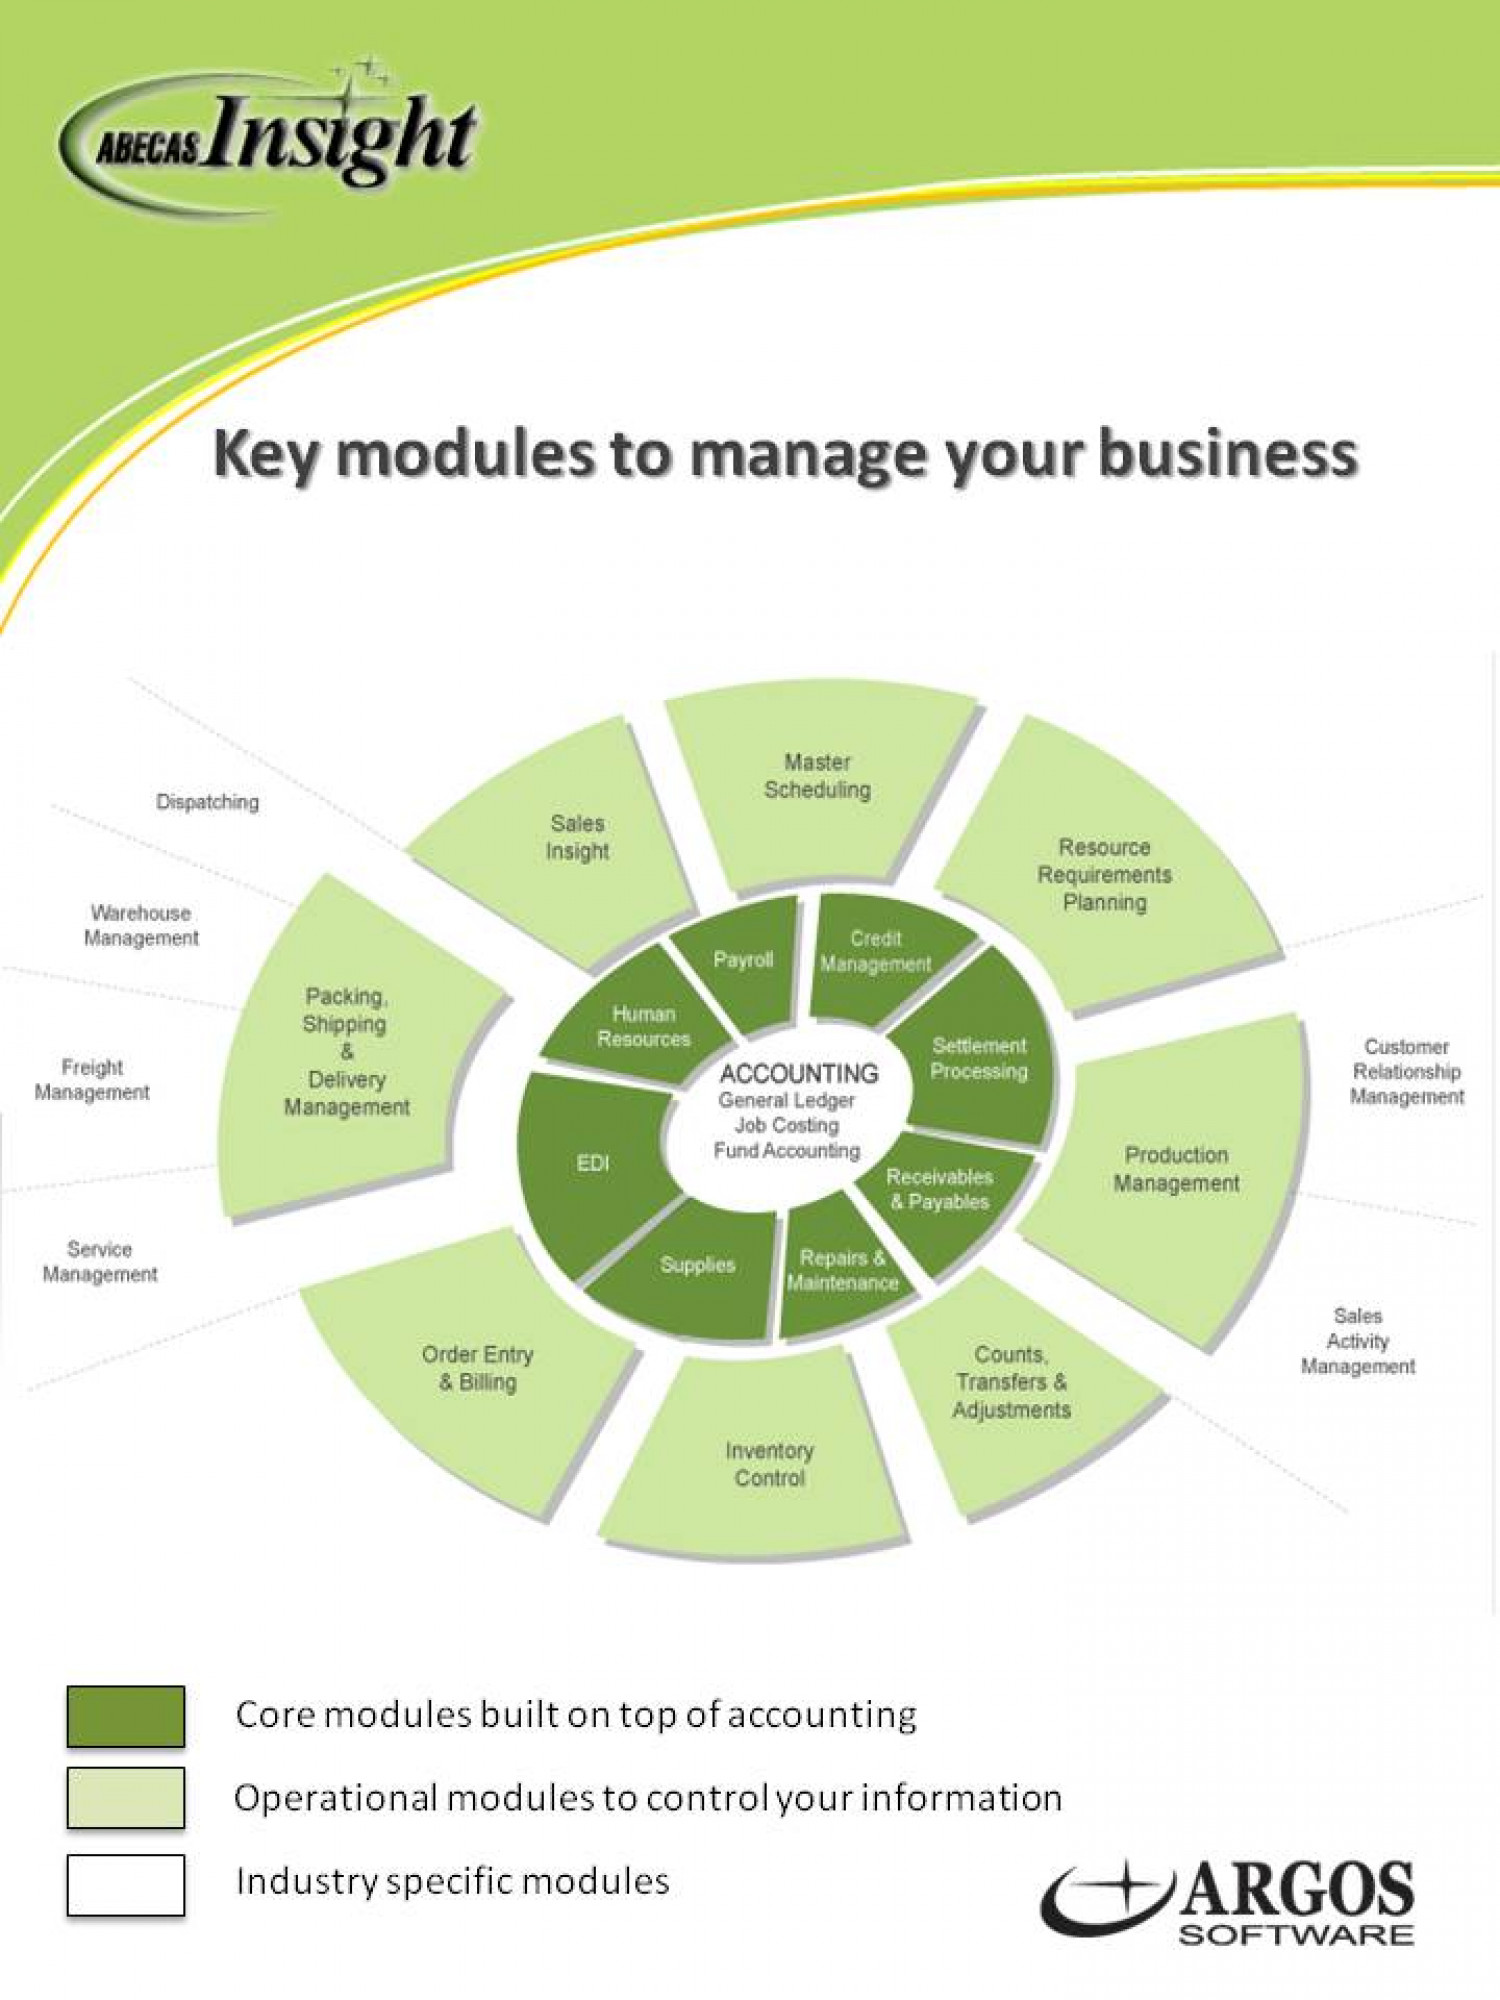 The Key elements to manage your Business Infographic